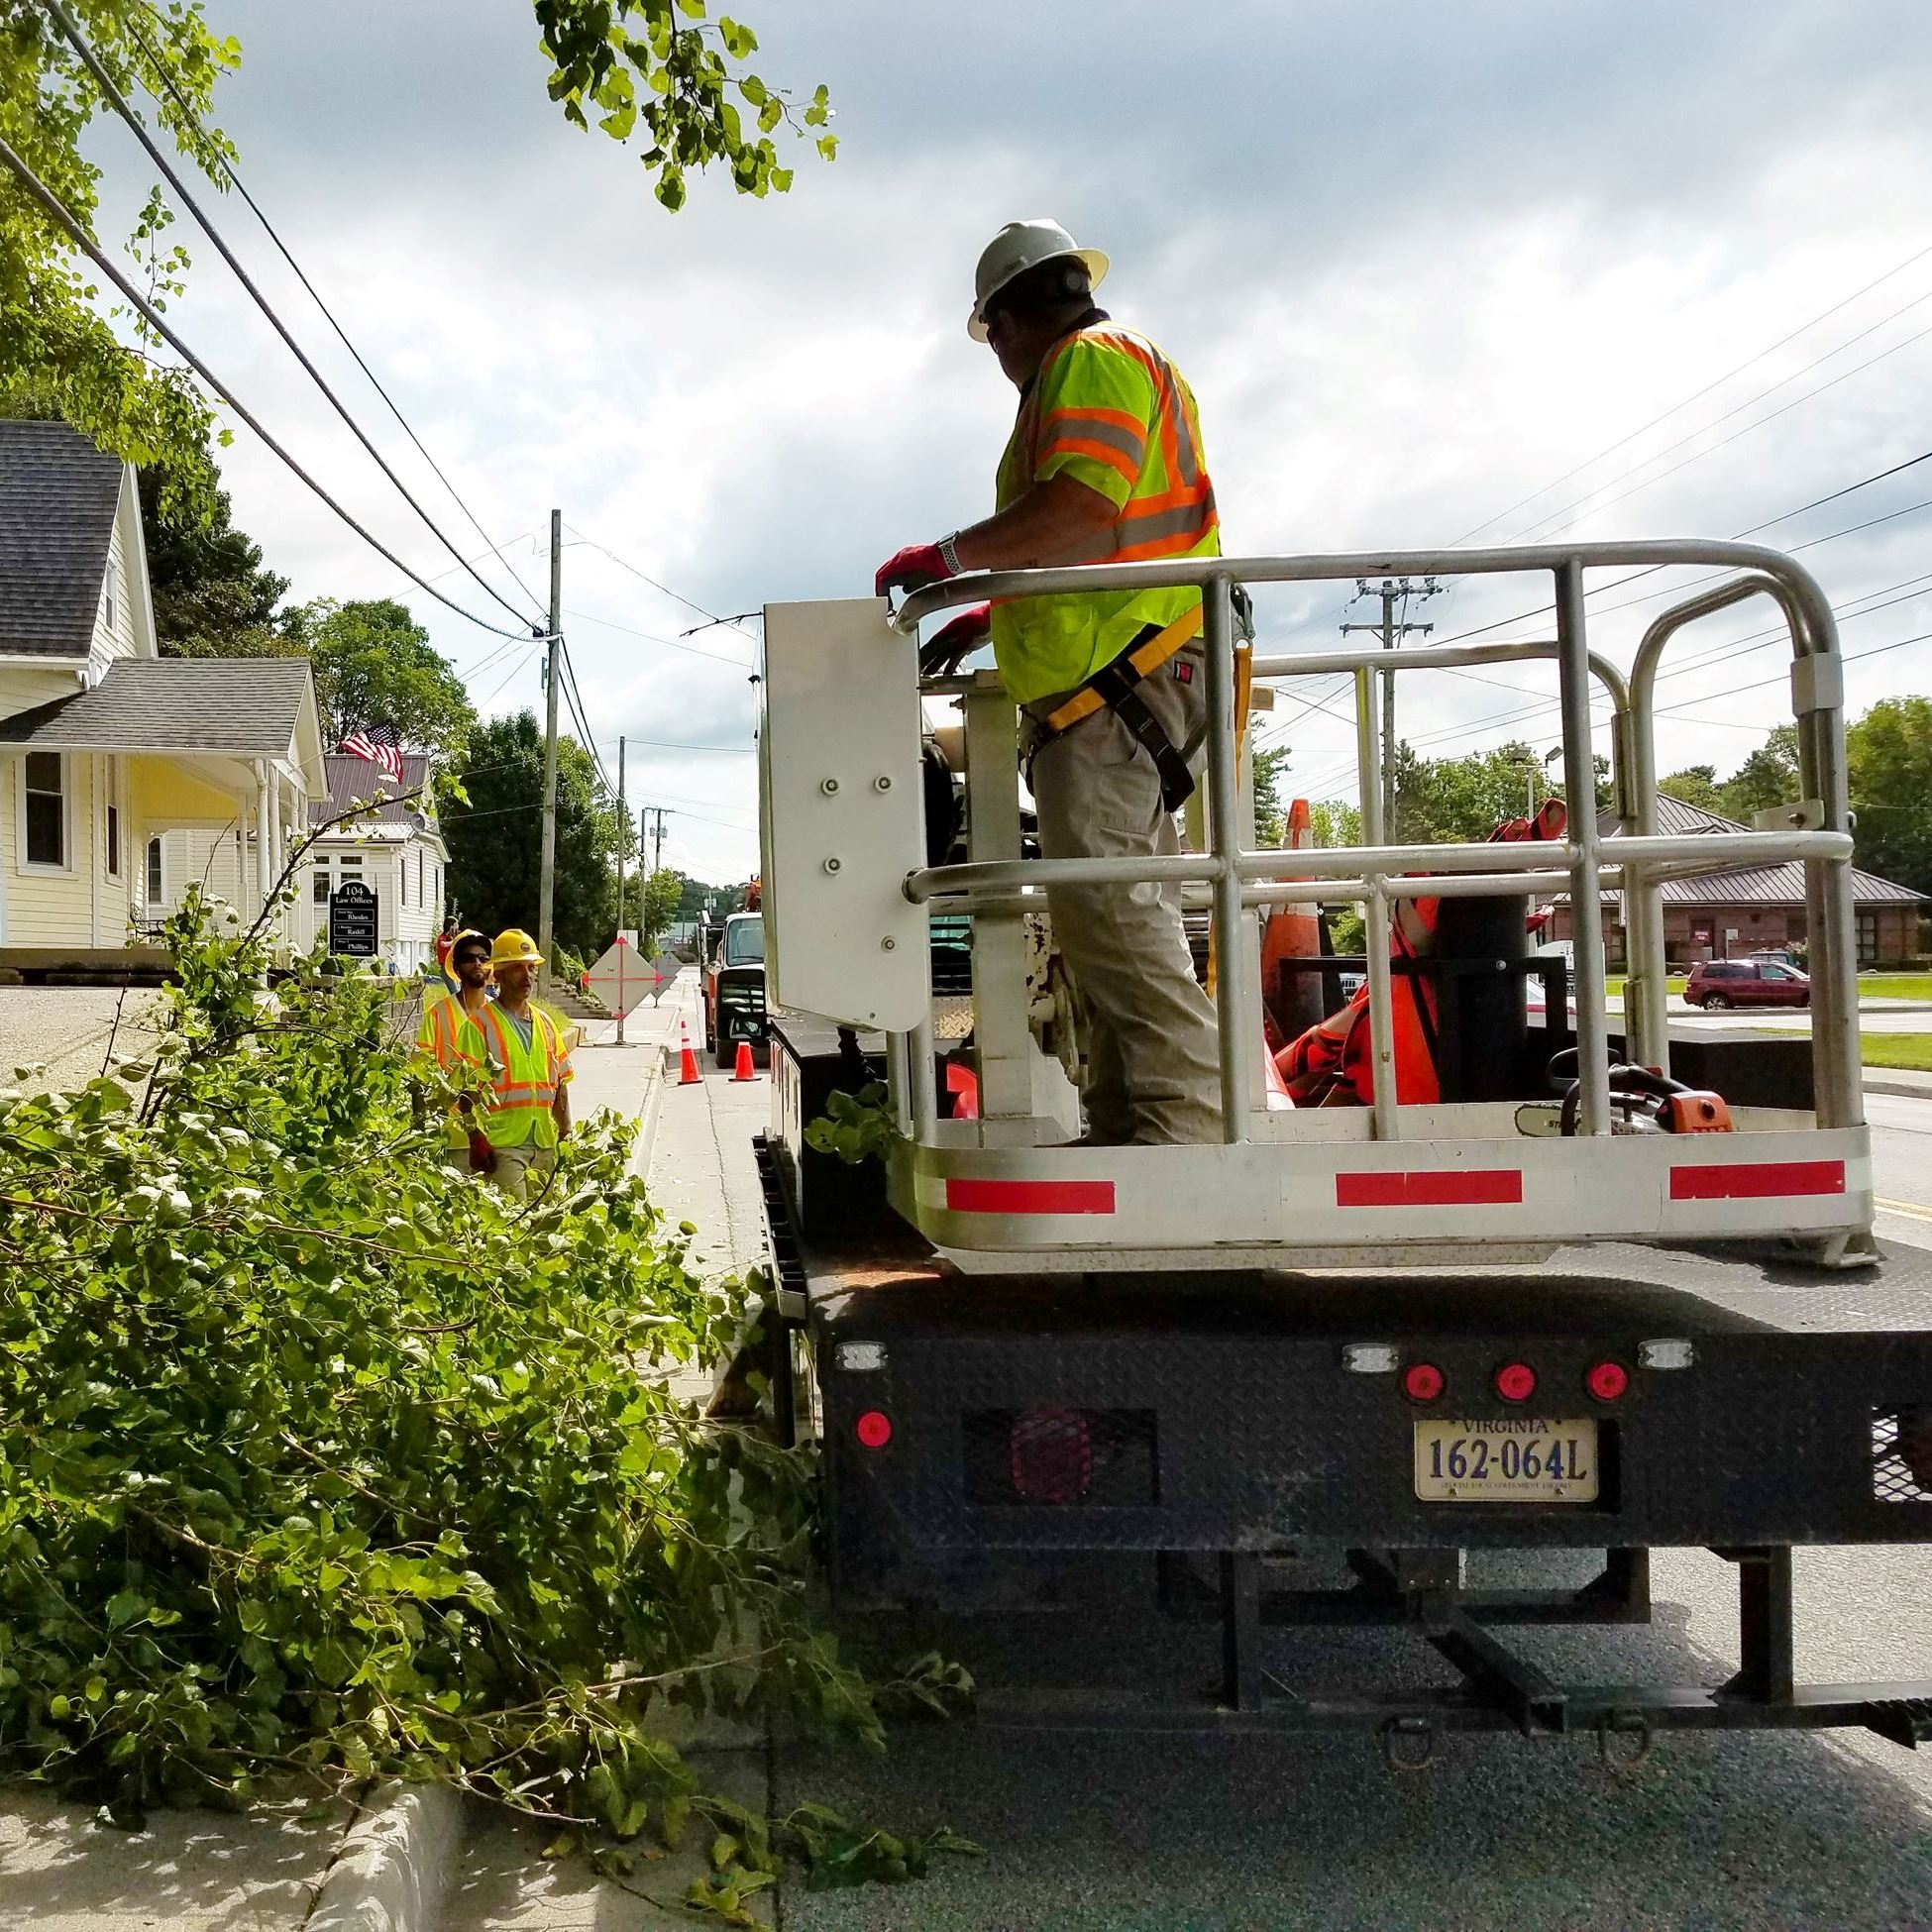 A Town employee wearing a hard hat and Public Works vest.